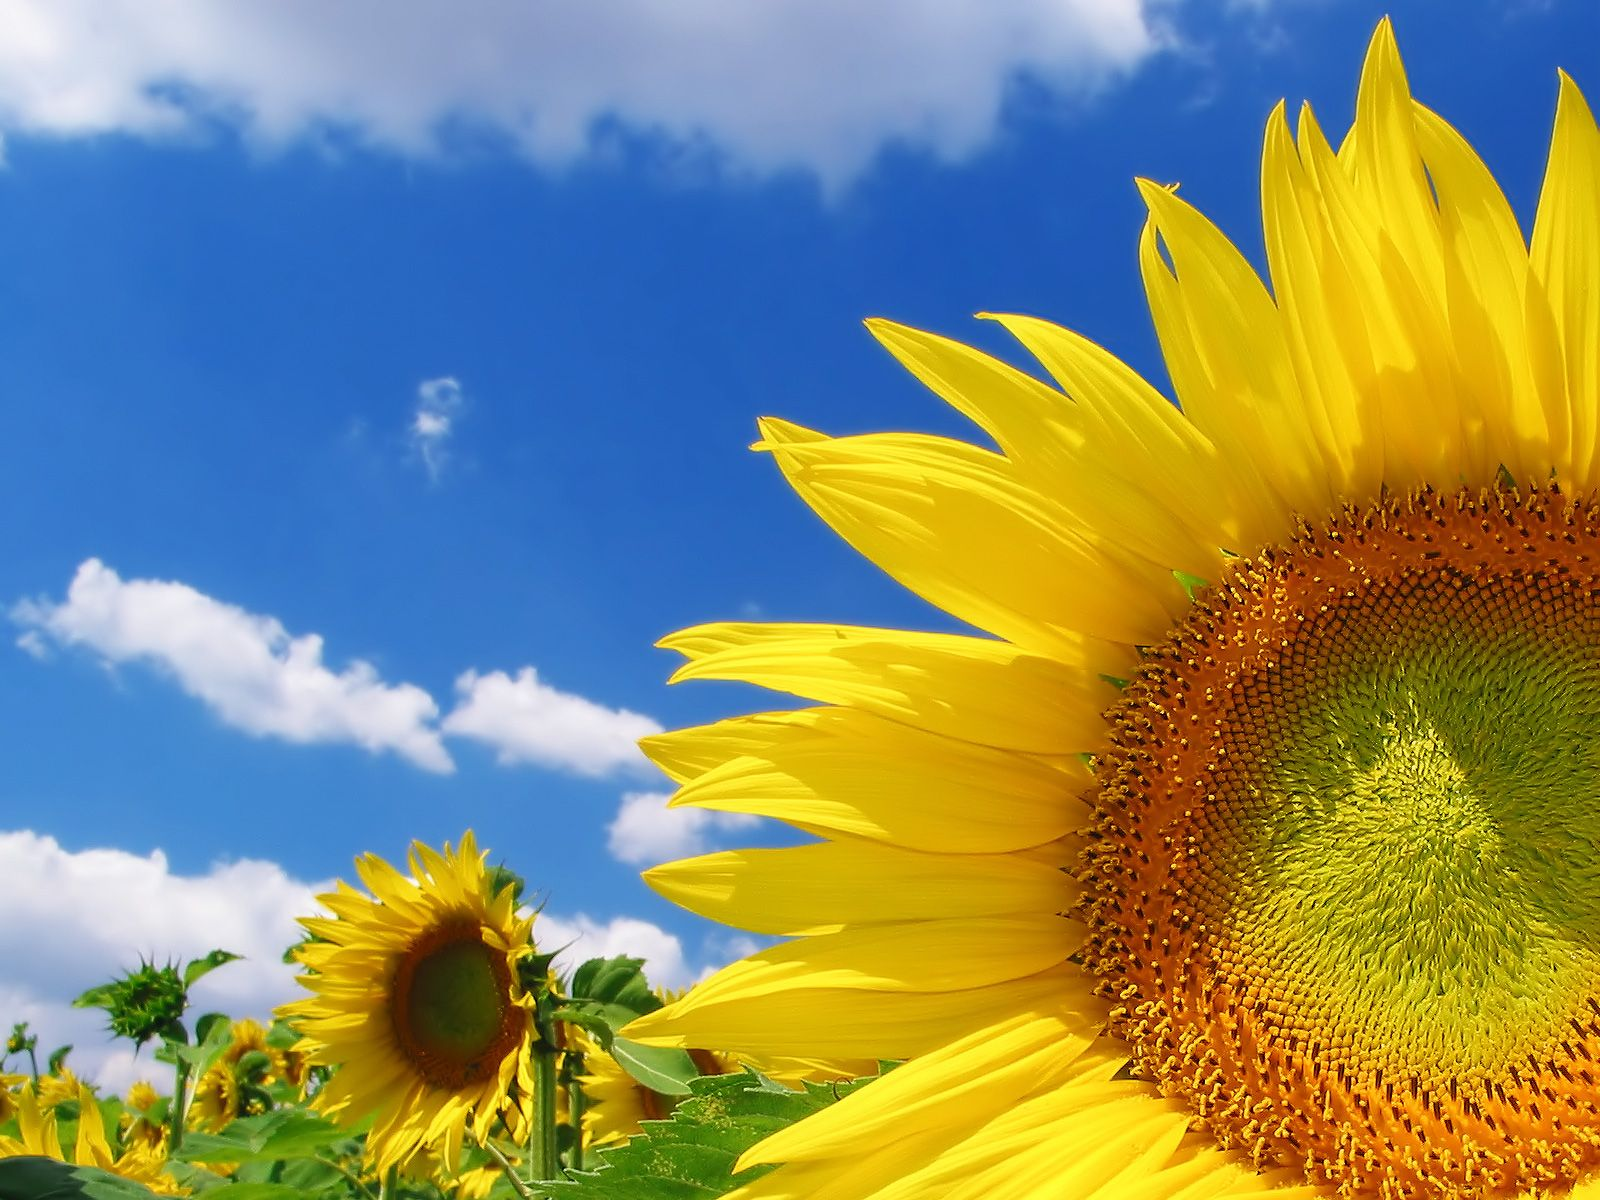 sunflower wallpaper | sunflower wallpaper hd, sunflower desktop